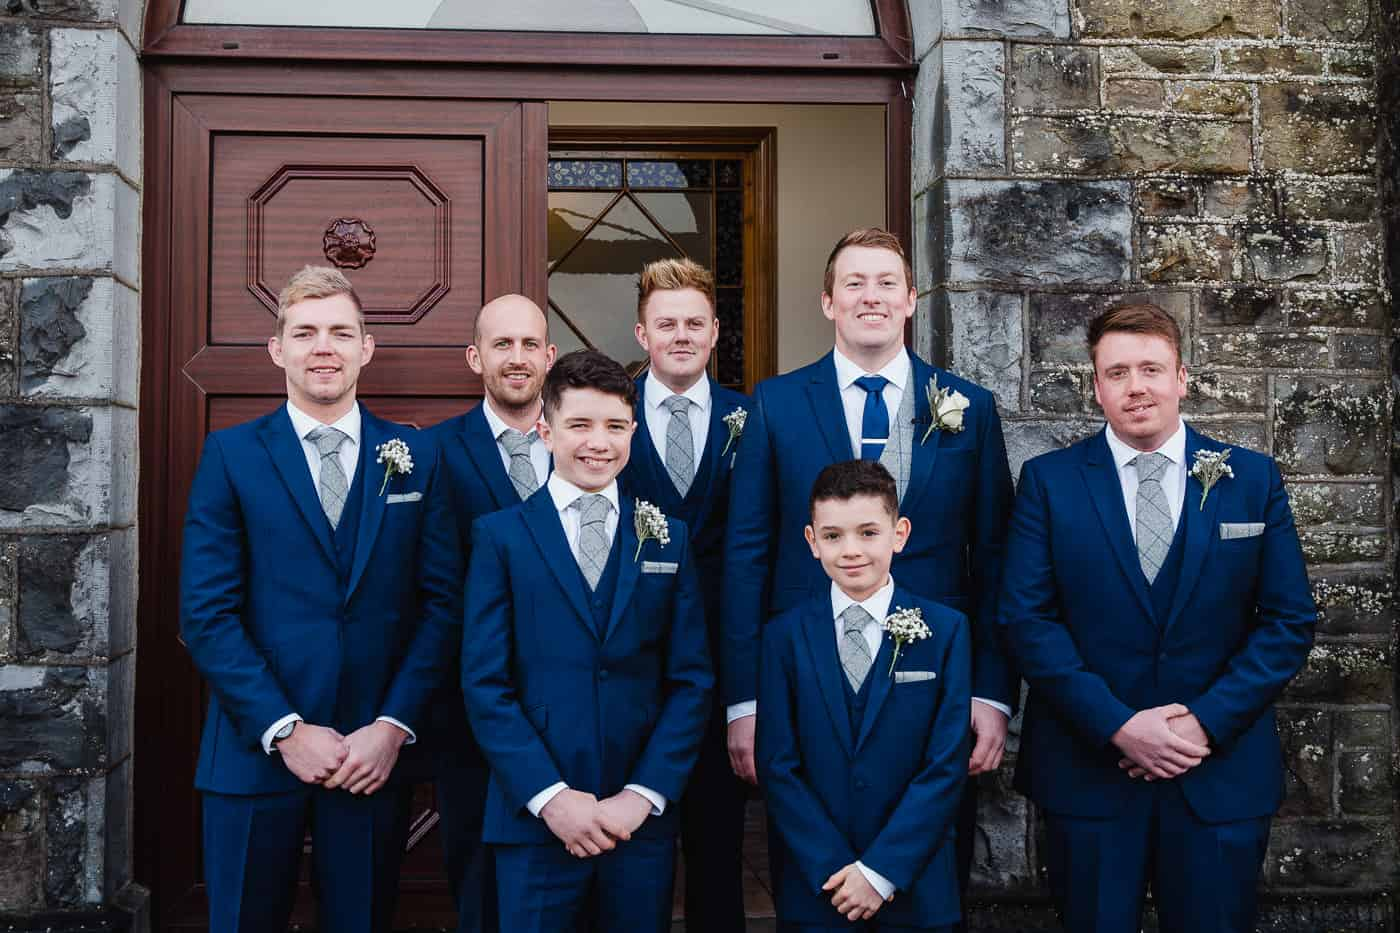 seven people smiling in suits